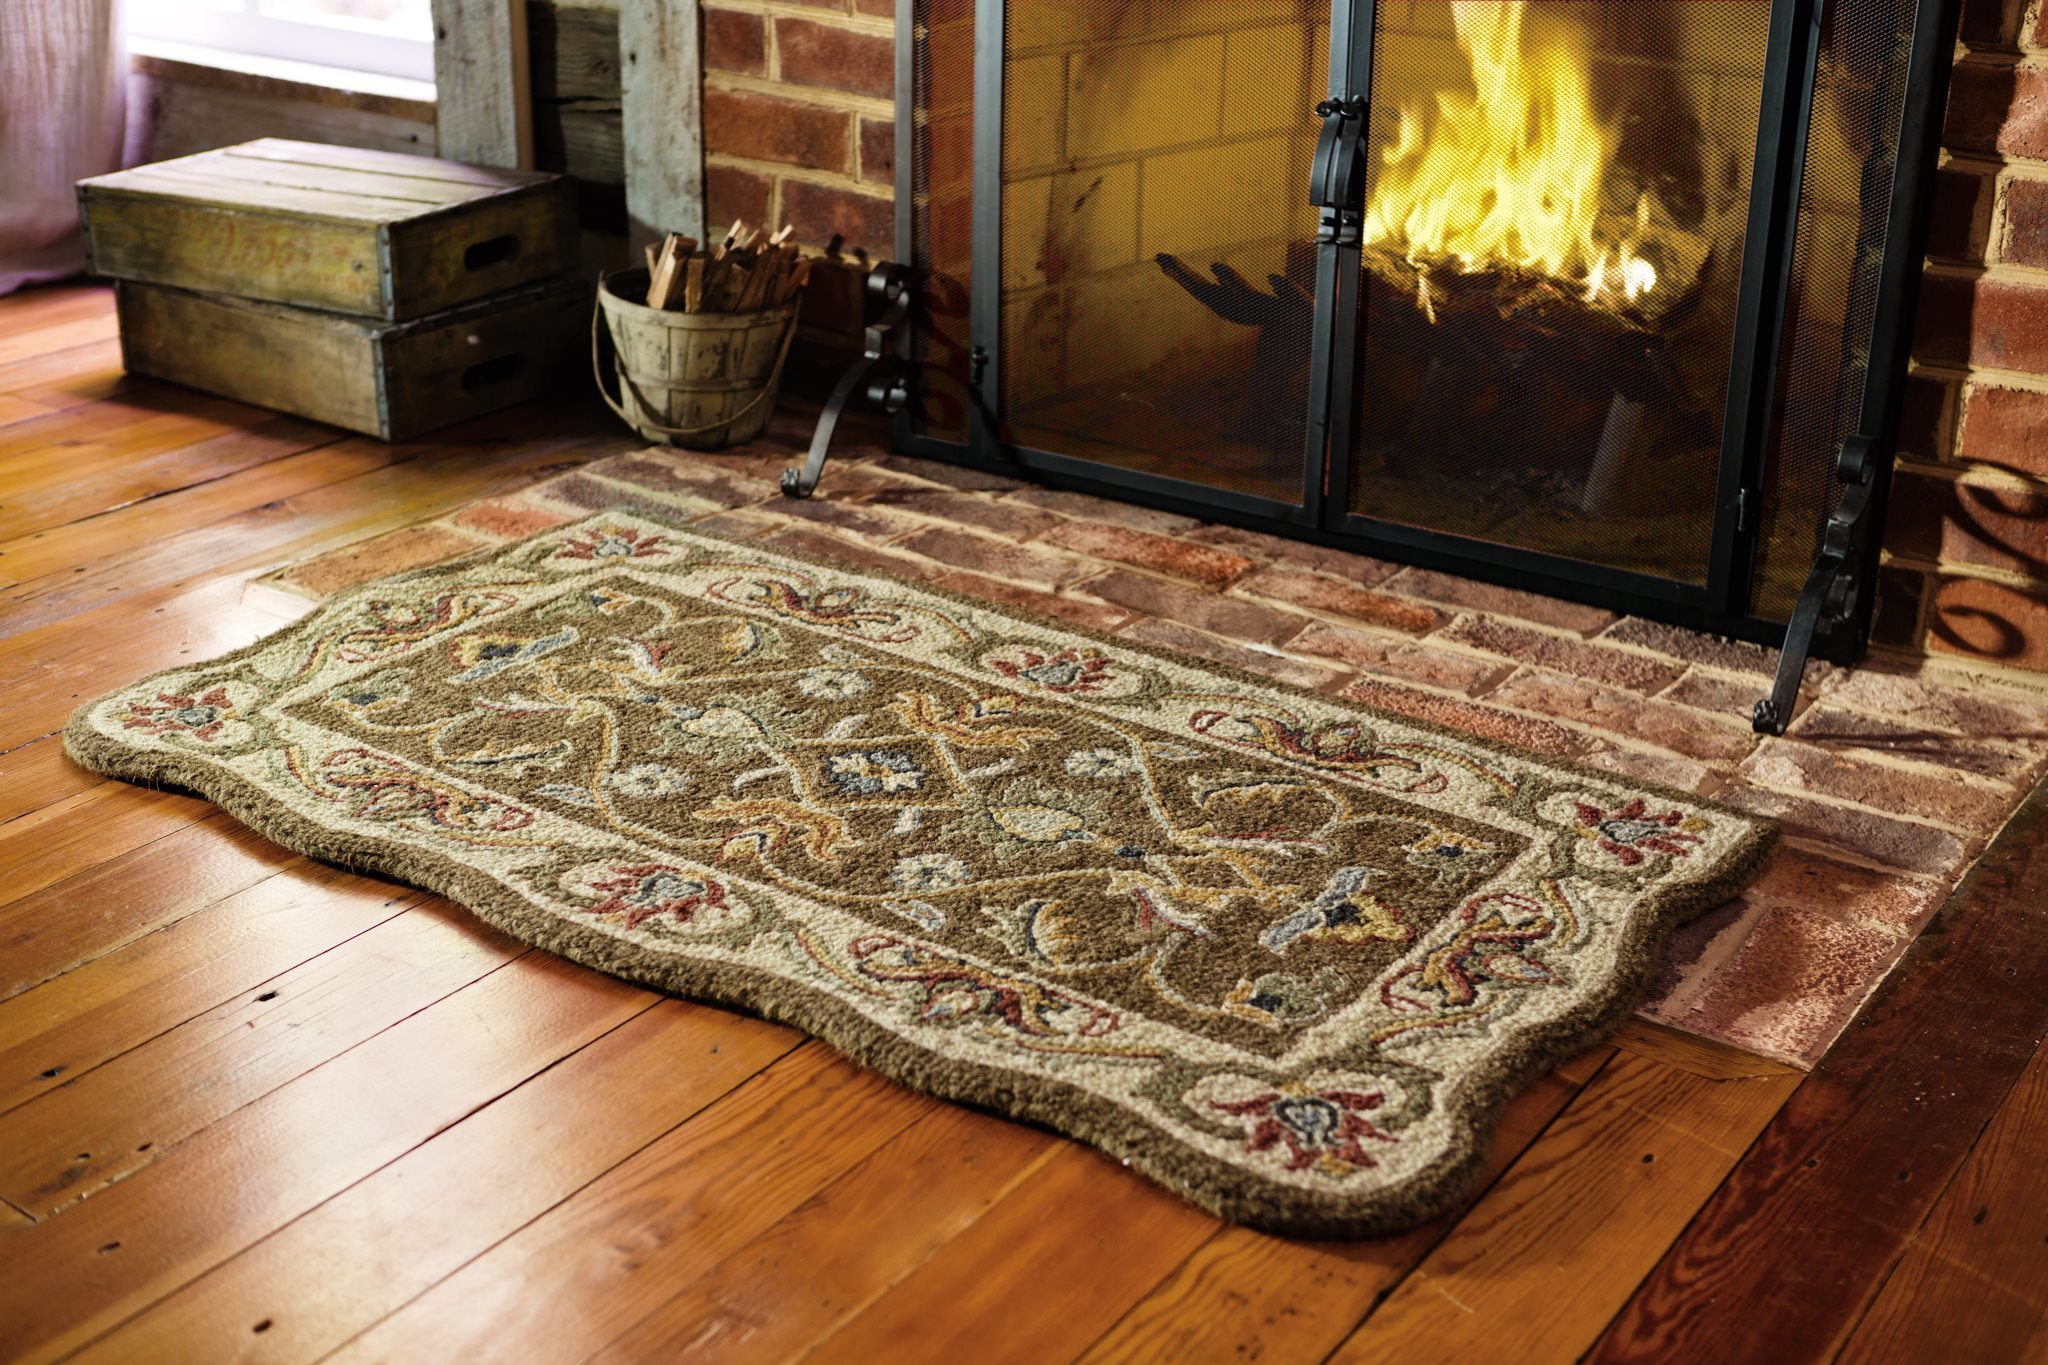 Fireplace Hearth Mat Handtufted Fire Resistant Scalloped Wool Mclean Hearth Rug